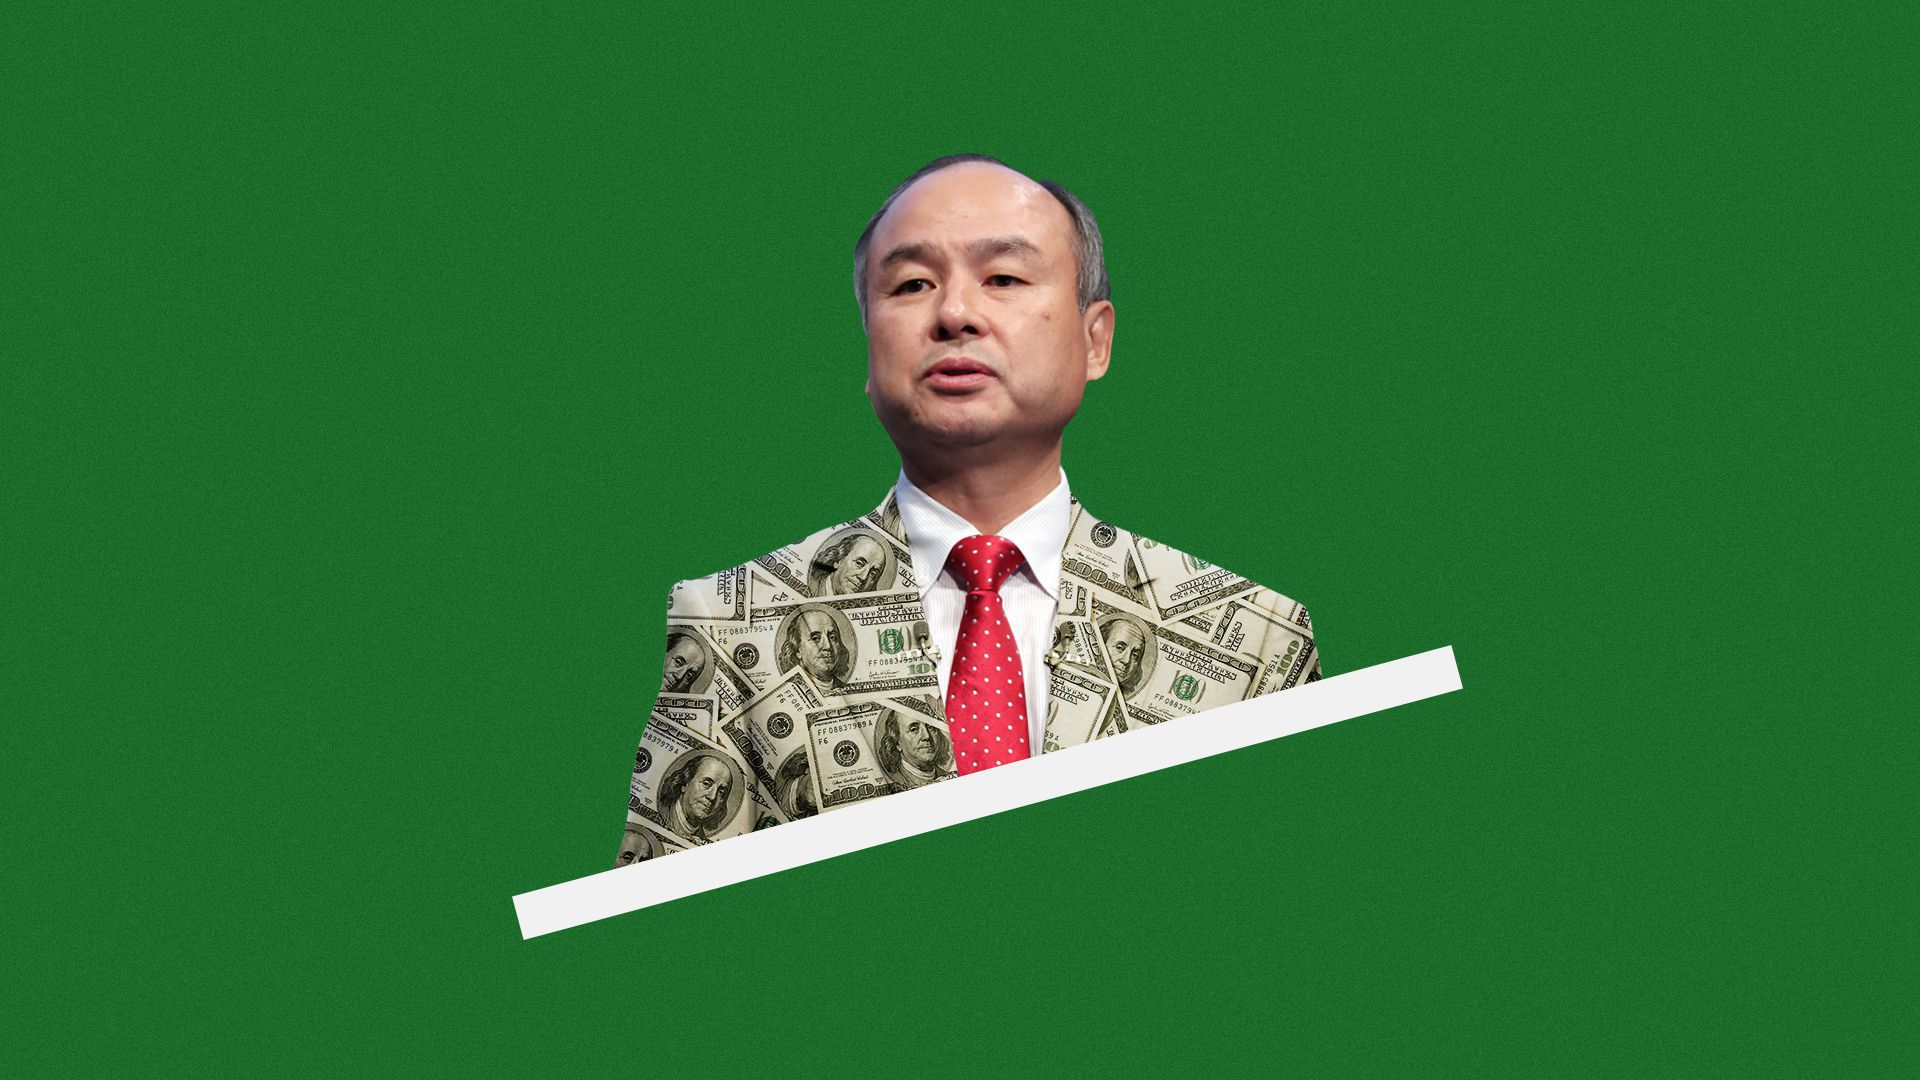 Illustration of Masayoshi Son in a money jacket